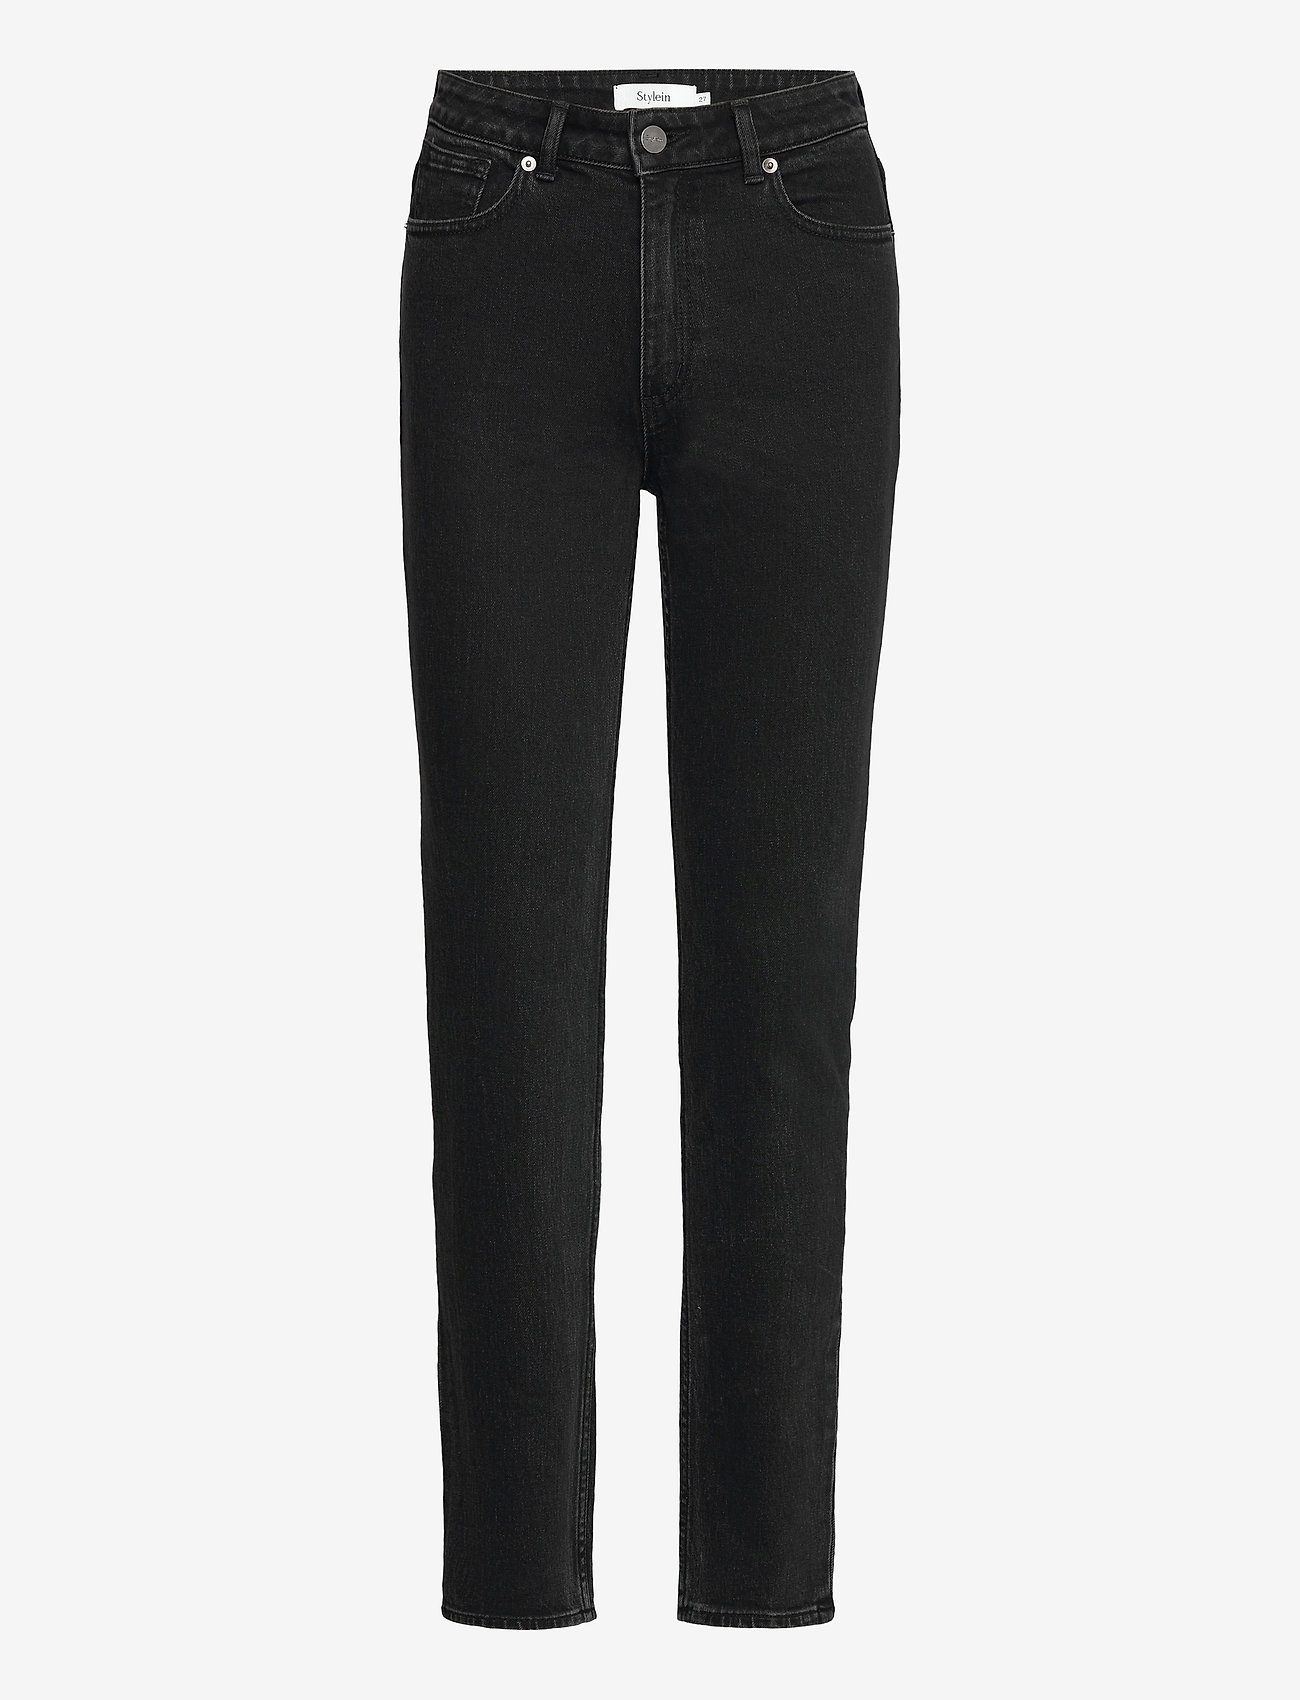 Stylein - KATIE DENIM - slim jeans - black - 1